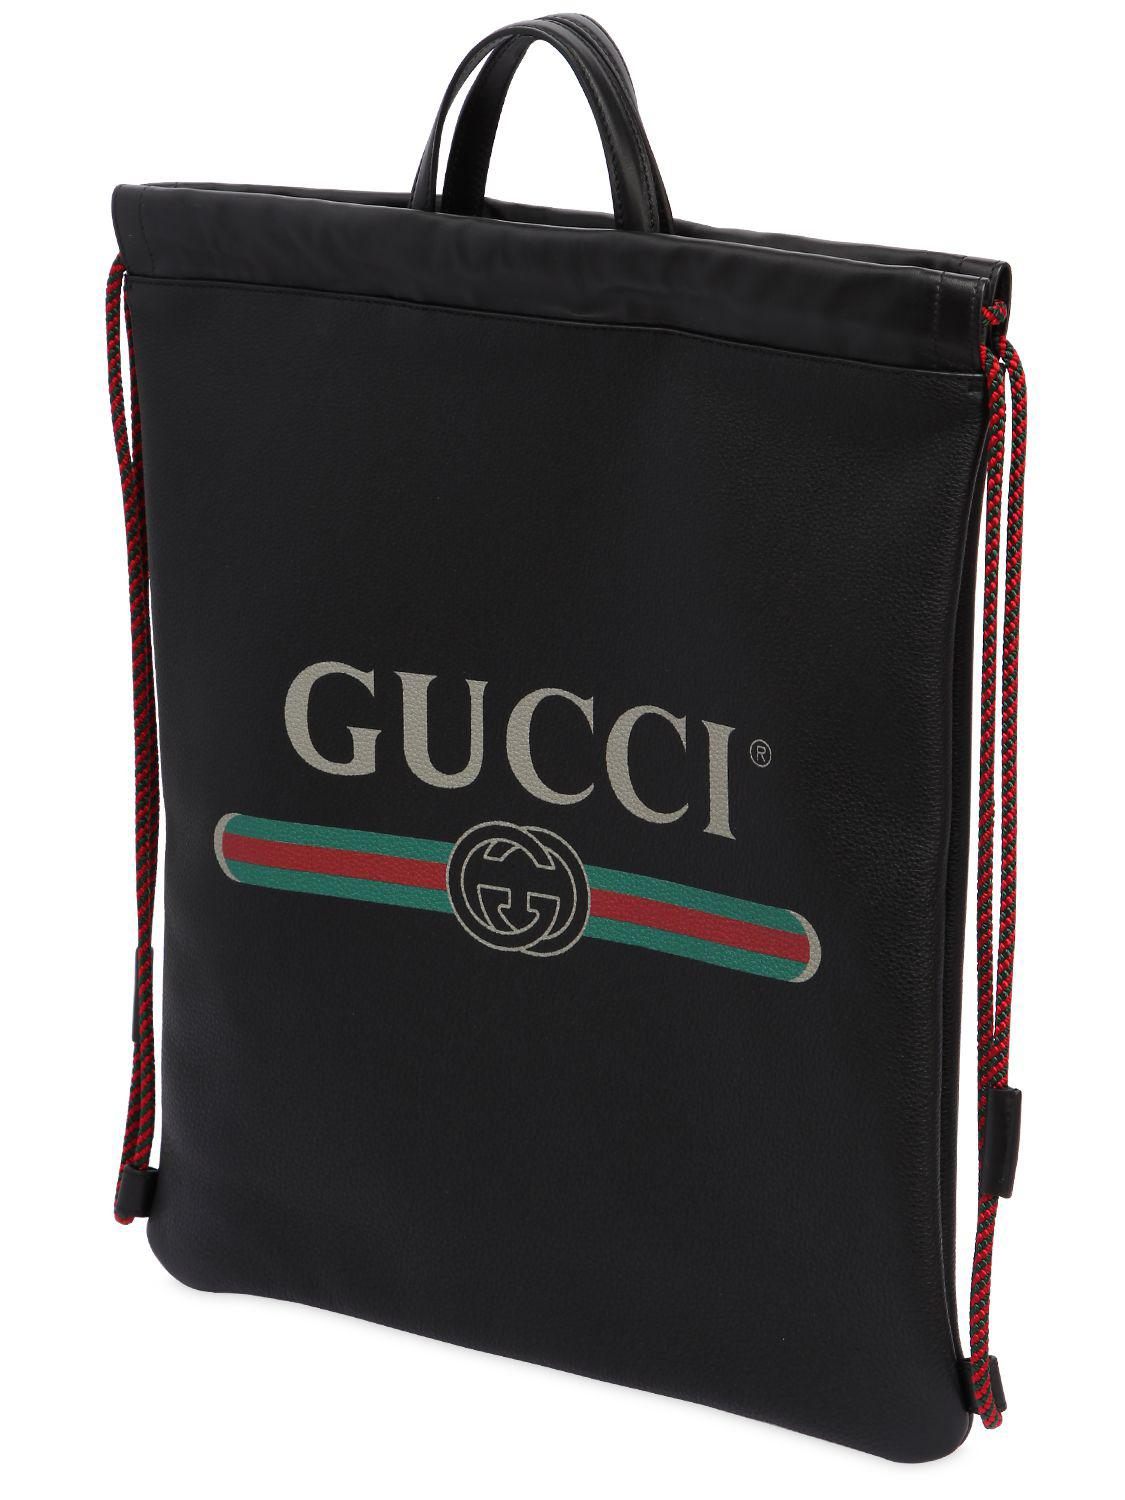 Lyst - Gucci Vintage Logo Printed Drawstring Backpack in Black for ... 11b3aa7107fa4